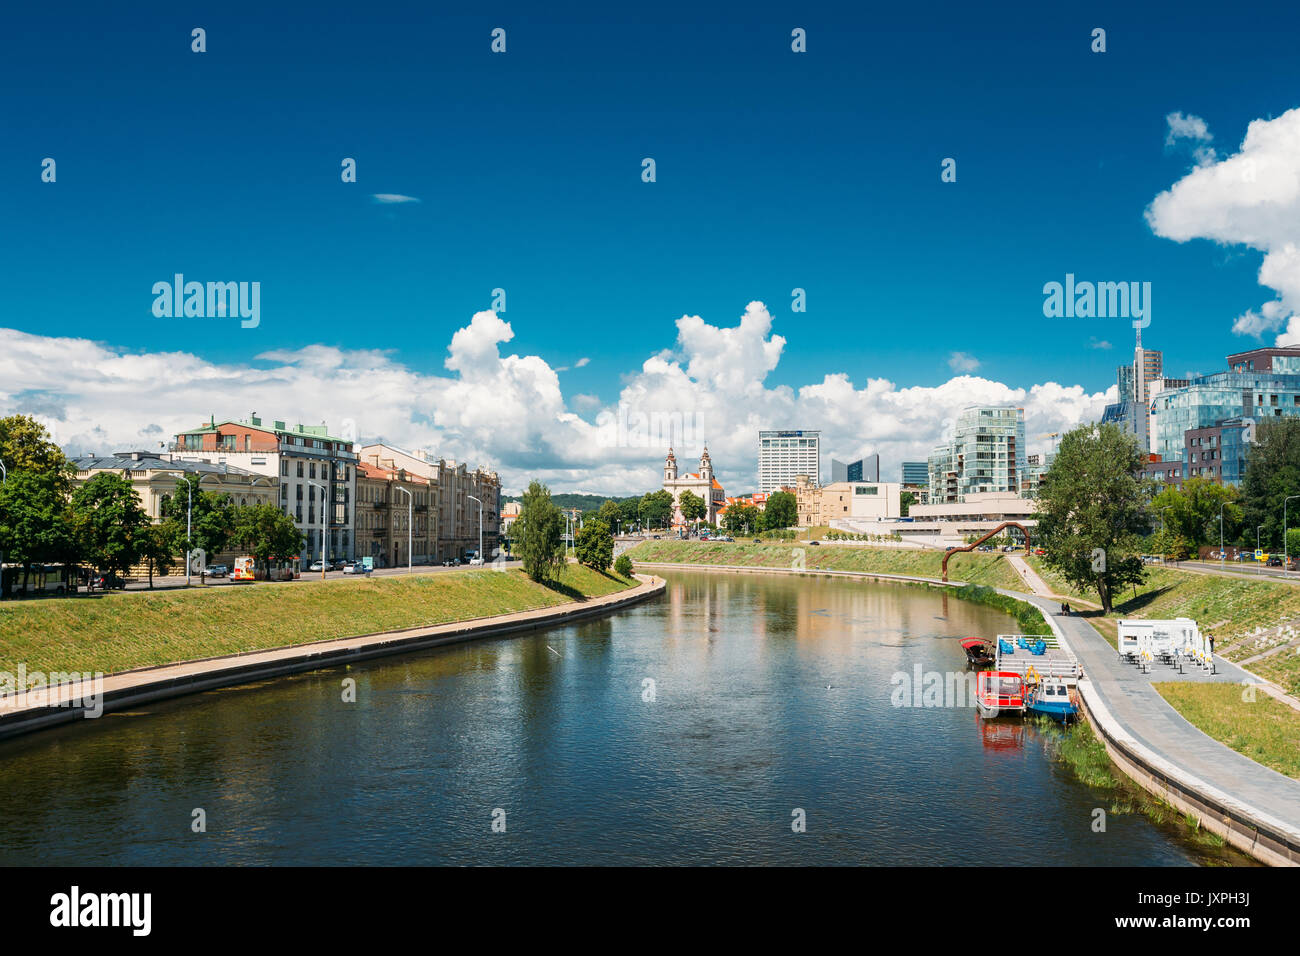 Vilnius, Lithuania  - July 5, 2016: Cityscape With Church Of St Raphael The Archangel And Former Jesuit Monastery, Radisson Blu Hotel In Sunny Summer  - Stock Image